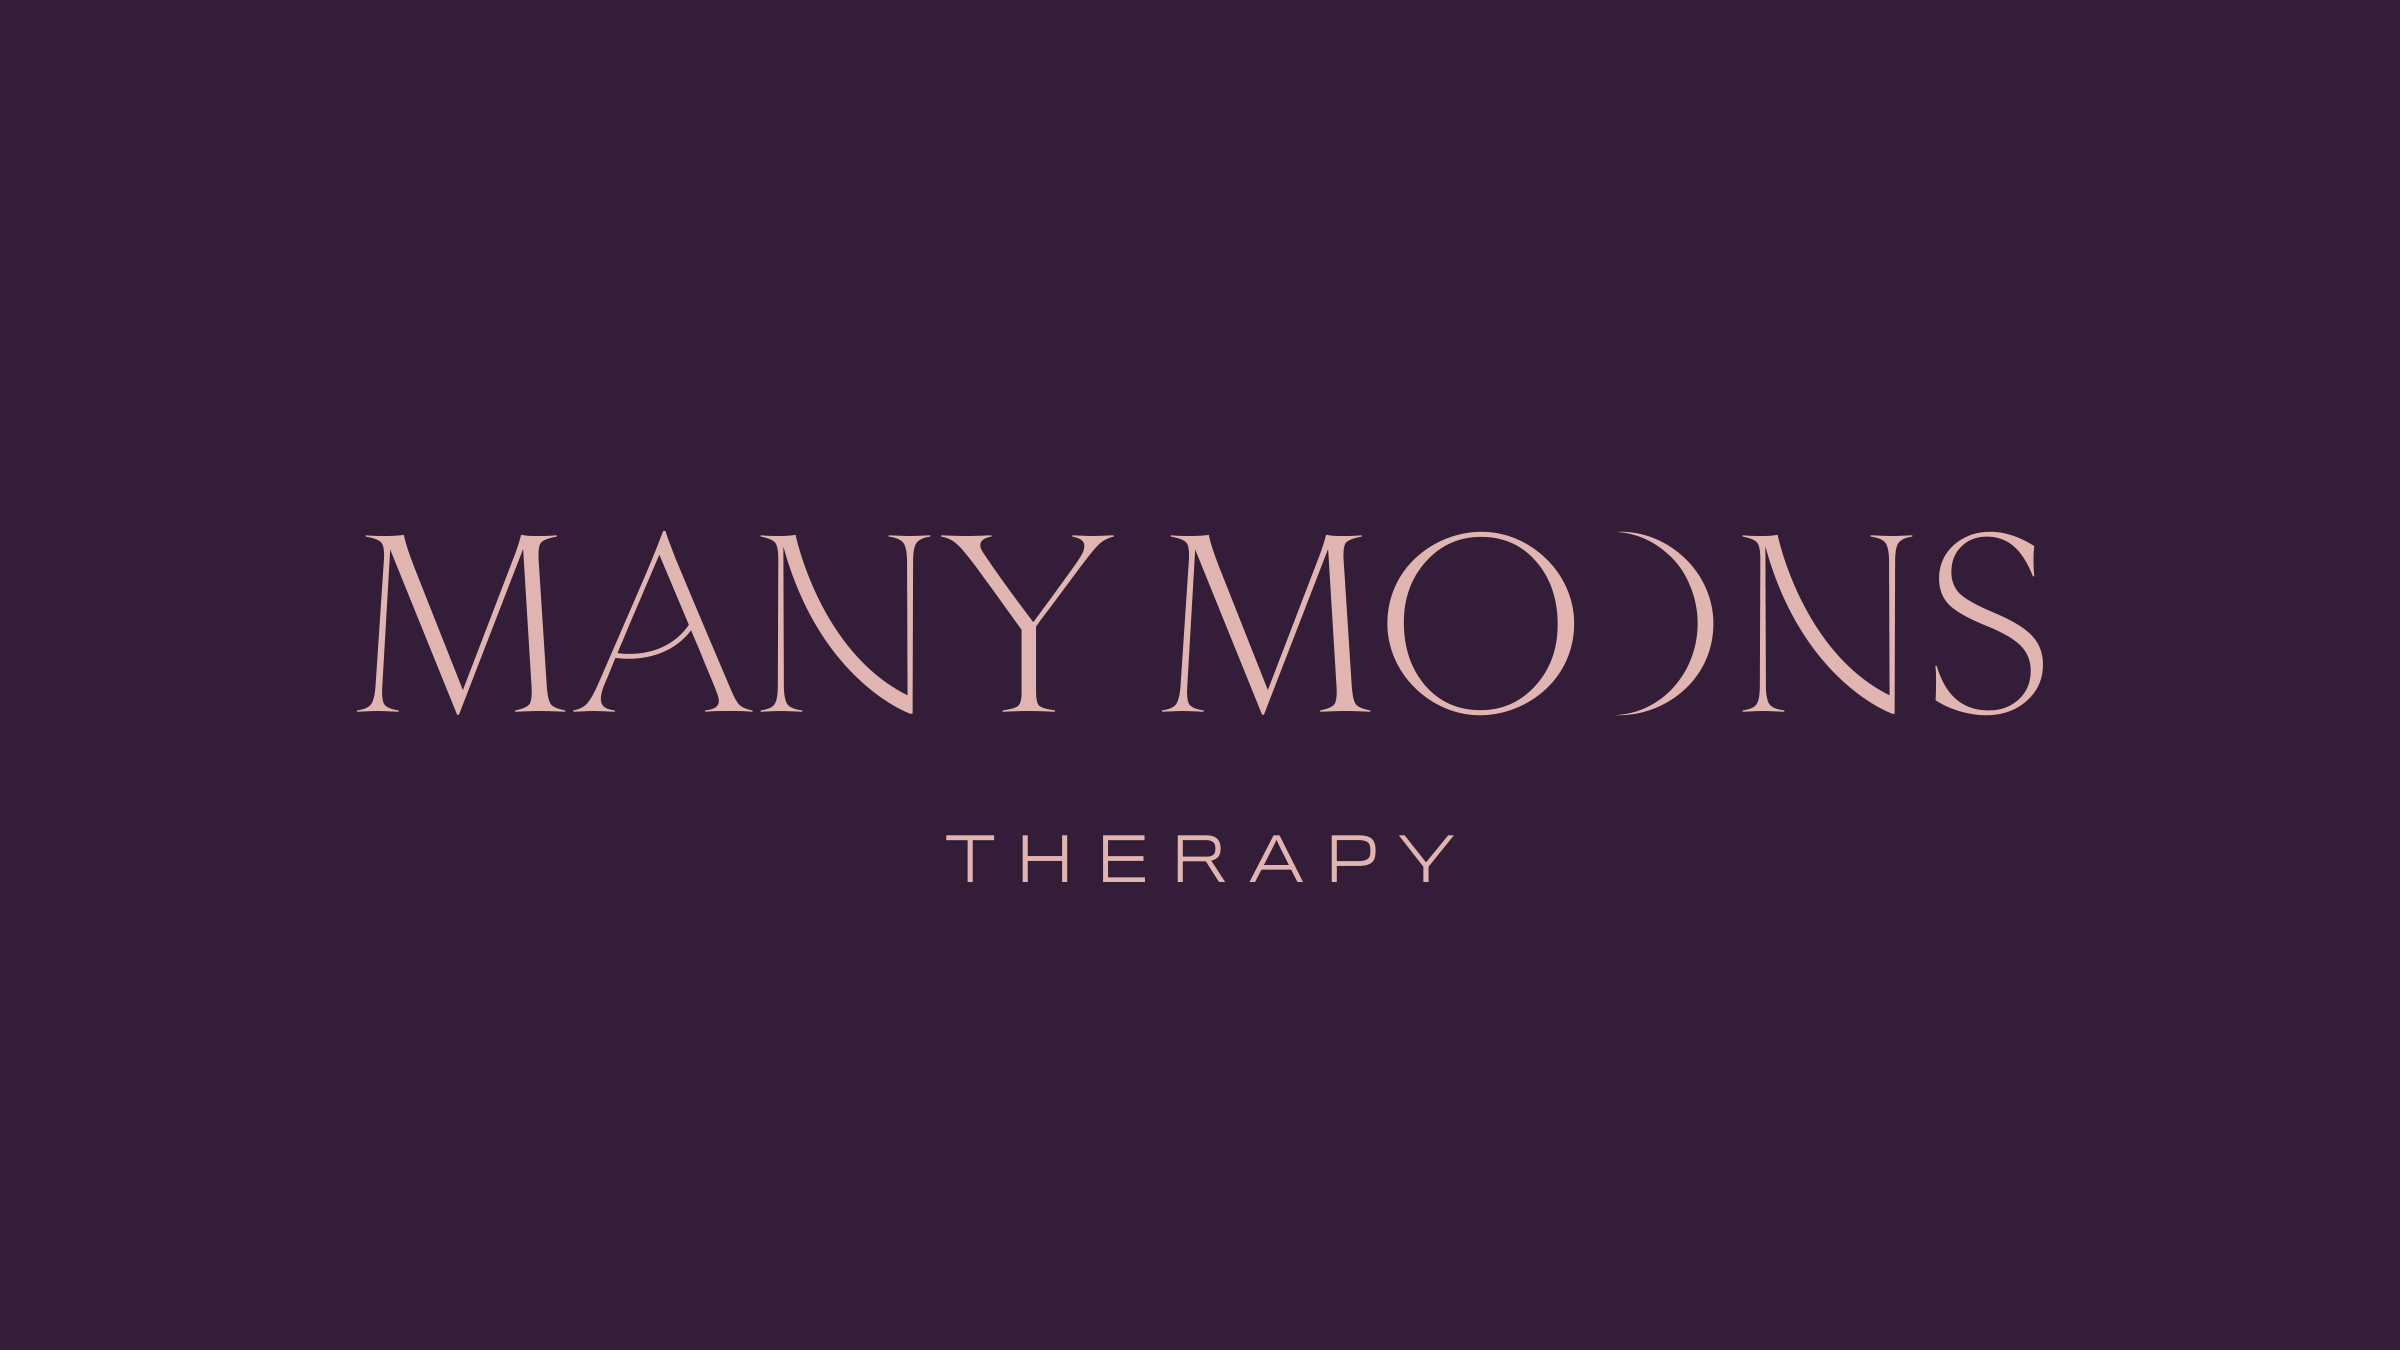 Manny Moons Therapy brand logo pink on purple